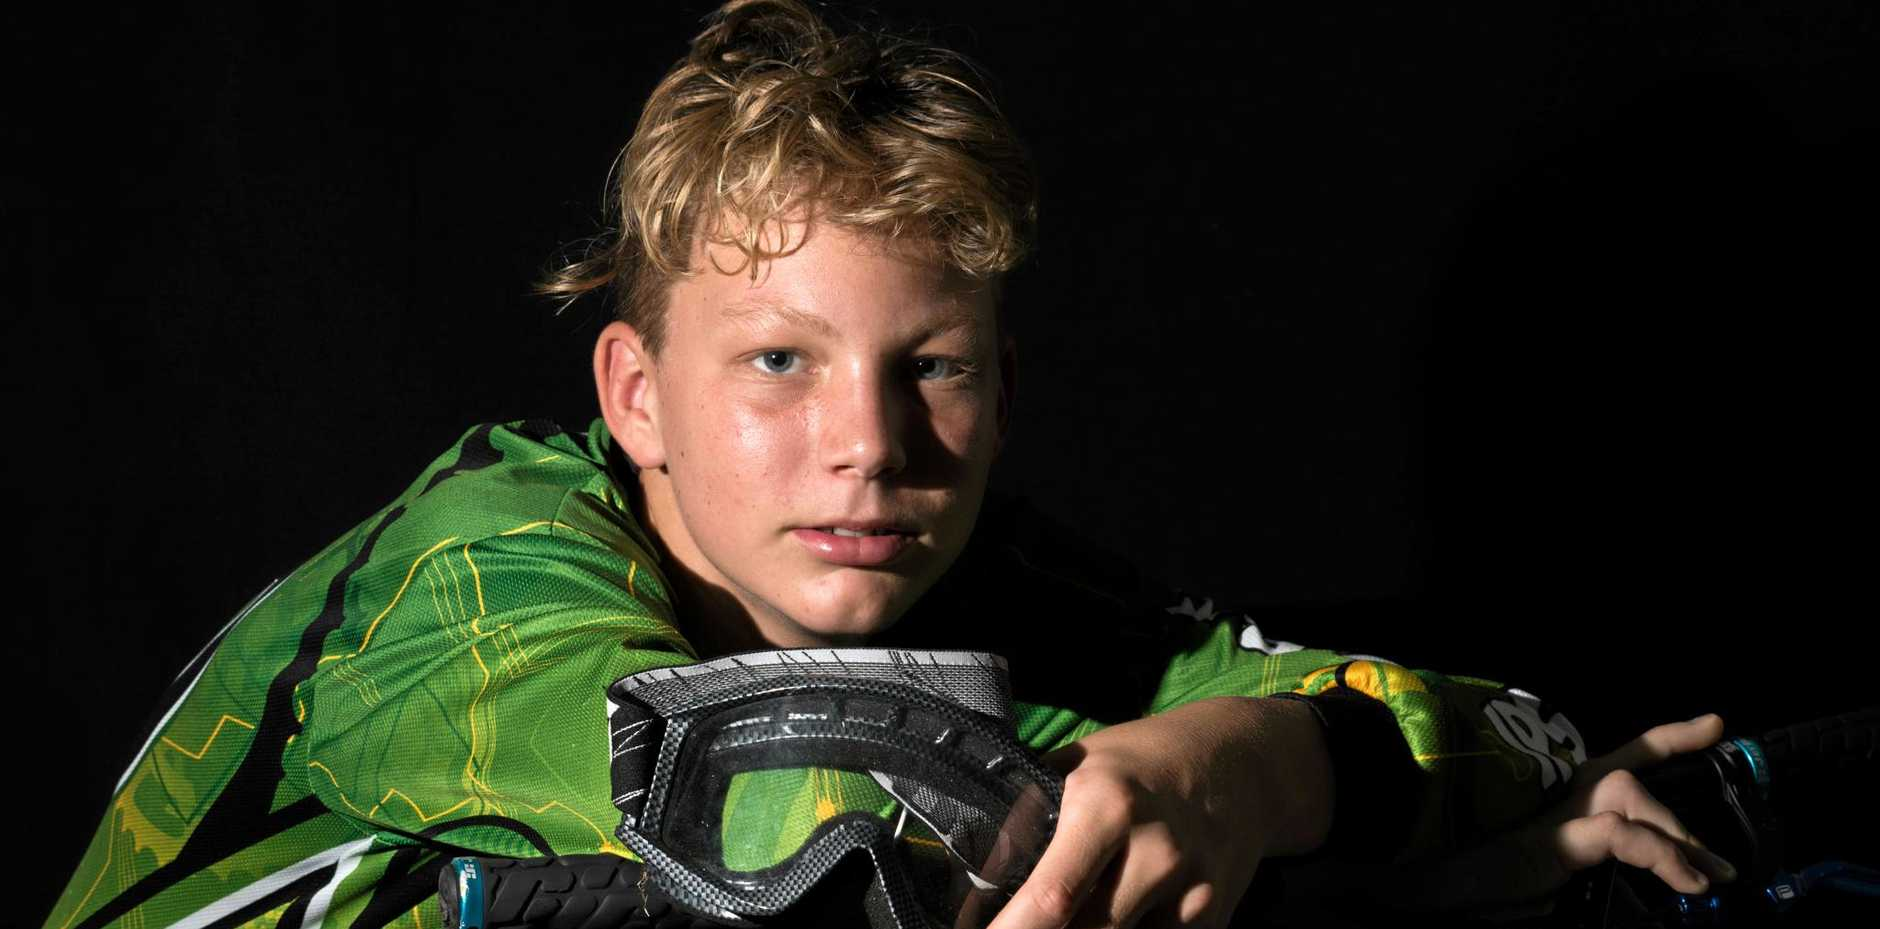 Fernvale BMX rider Jordan Press will compete at the Australian Titles later this year.